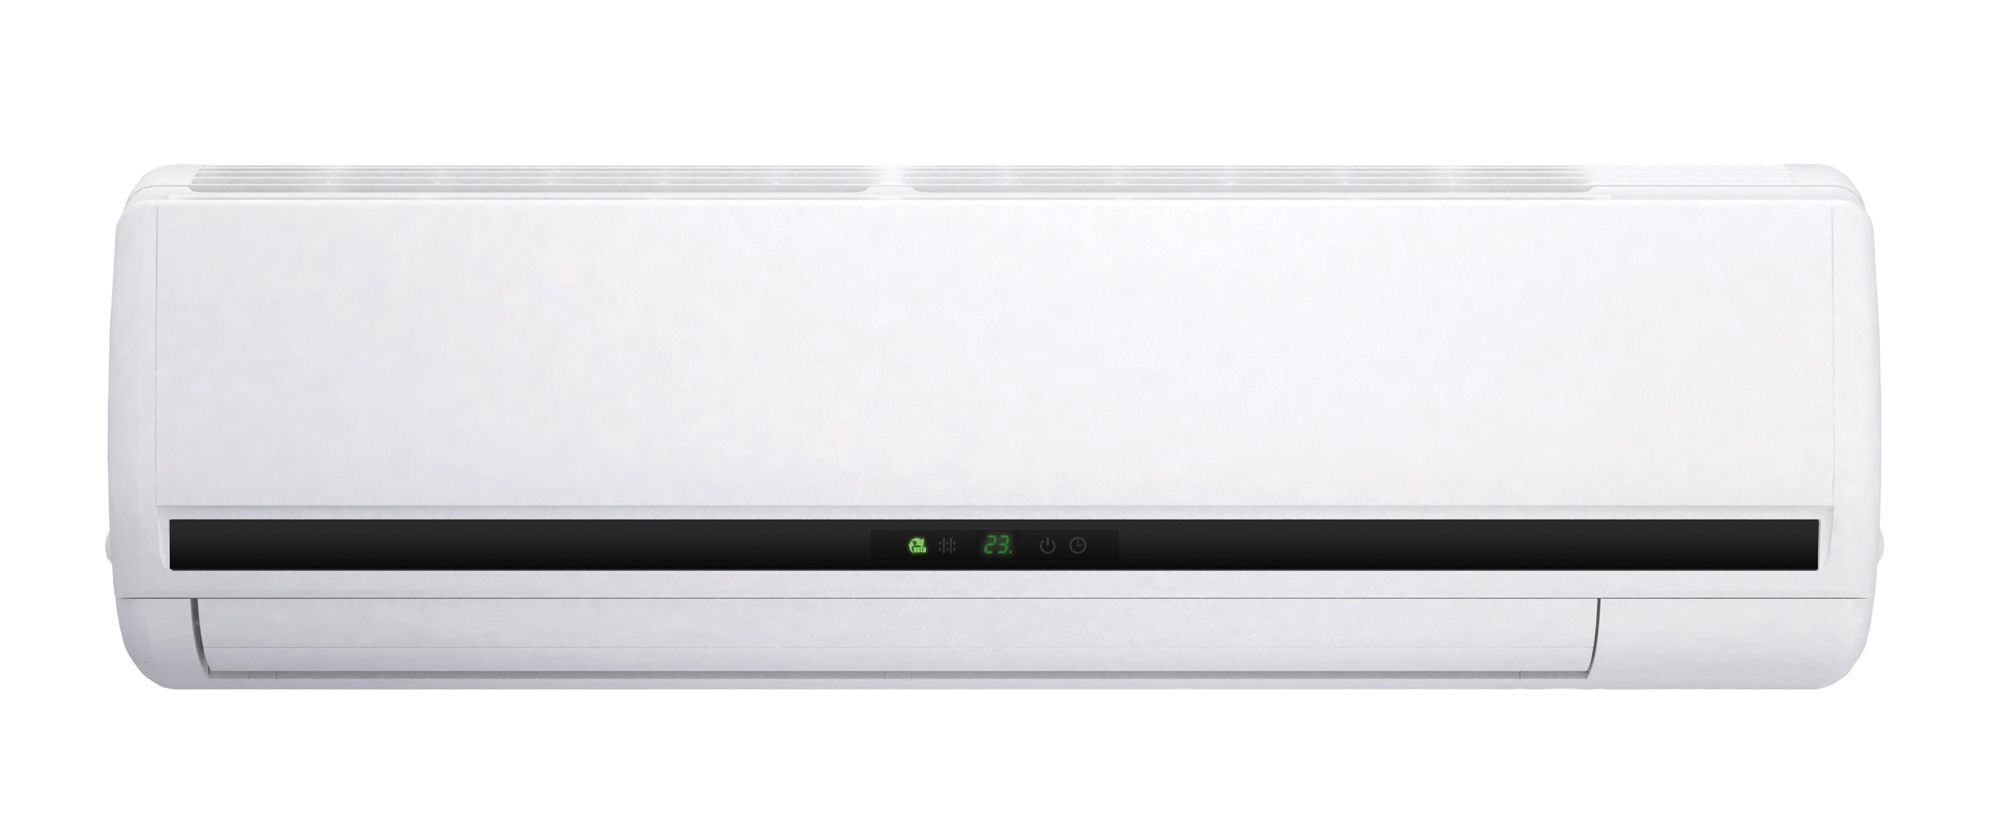 fujitsu inverter air conditioner manual